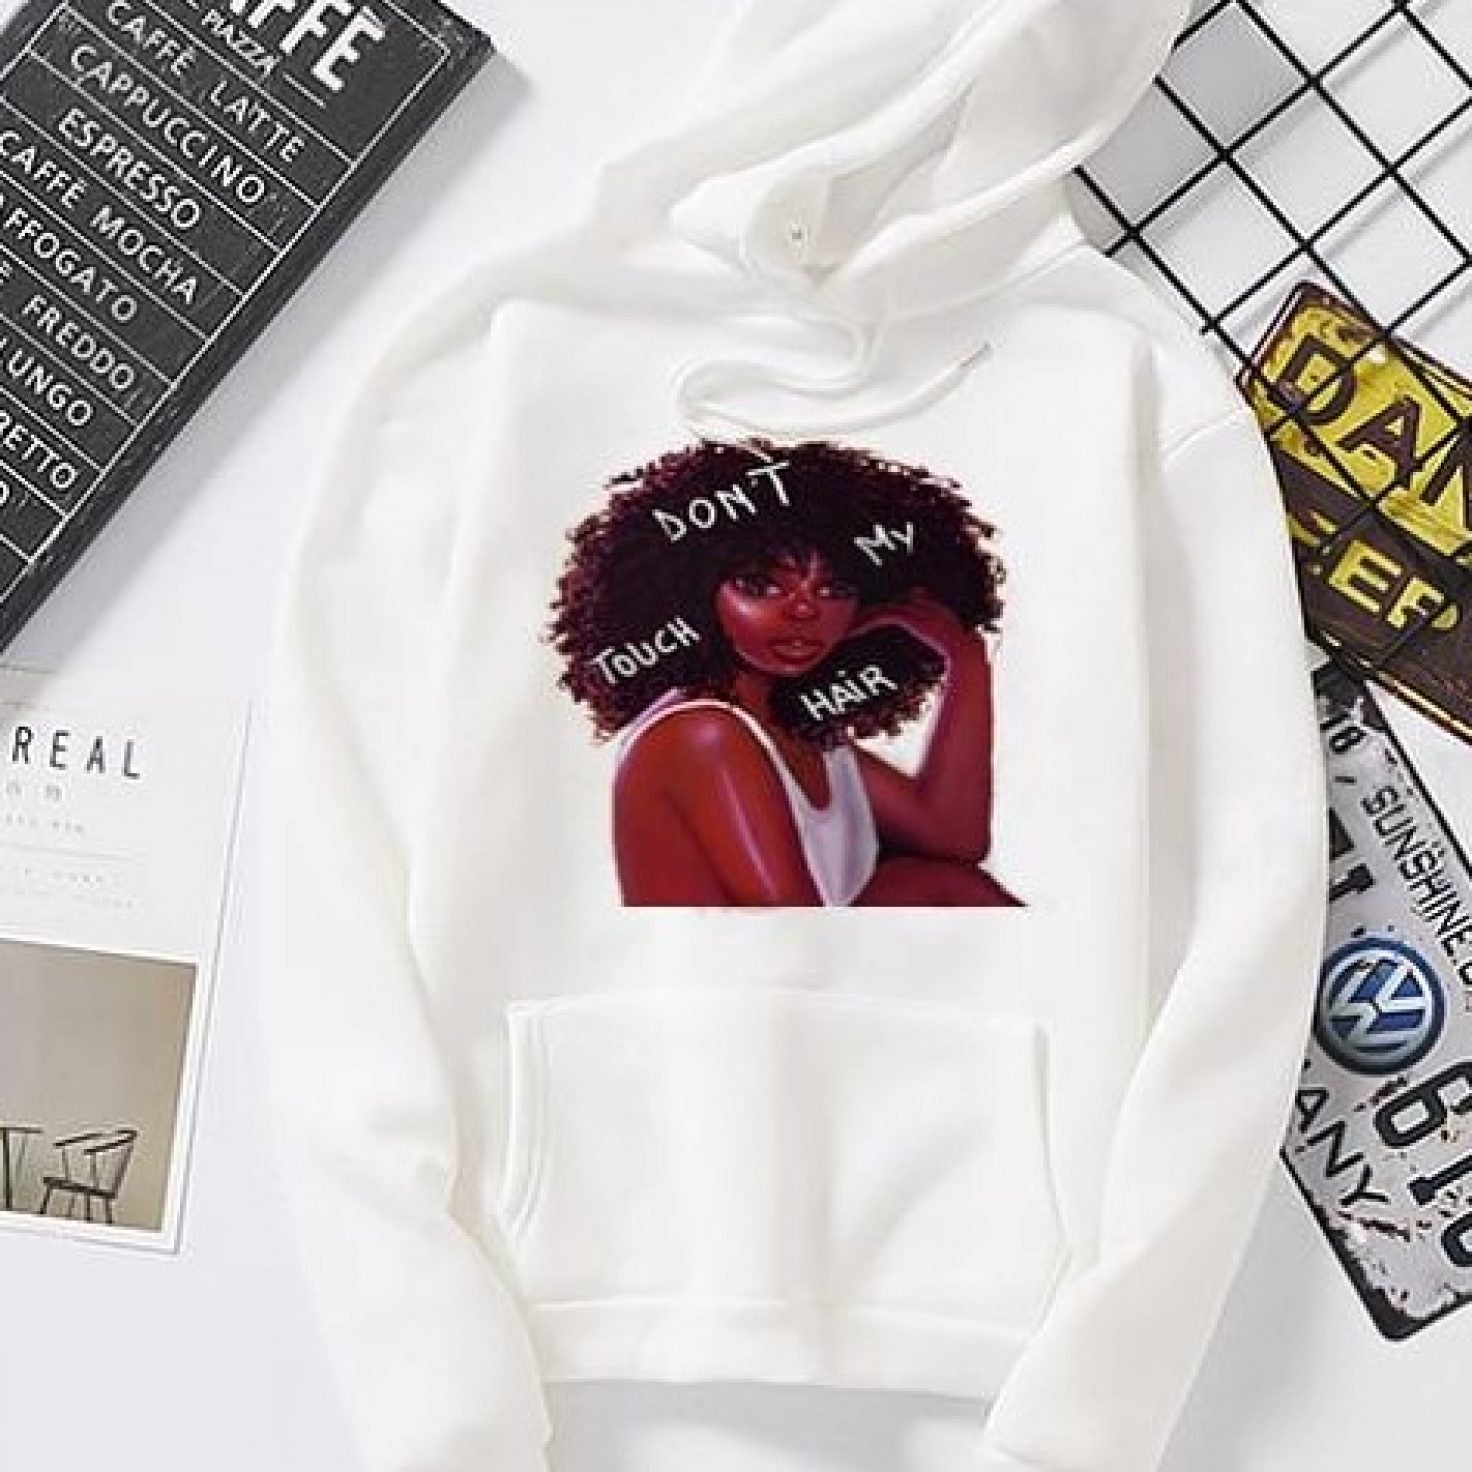 Forget Ugly Christmas Sweaters, Try These Sweatshirts That Celebrate Black Beauty